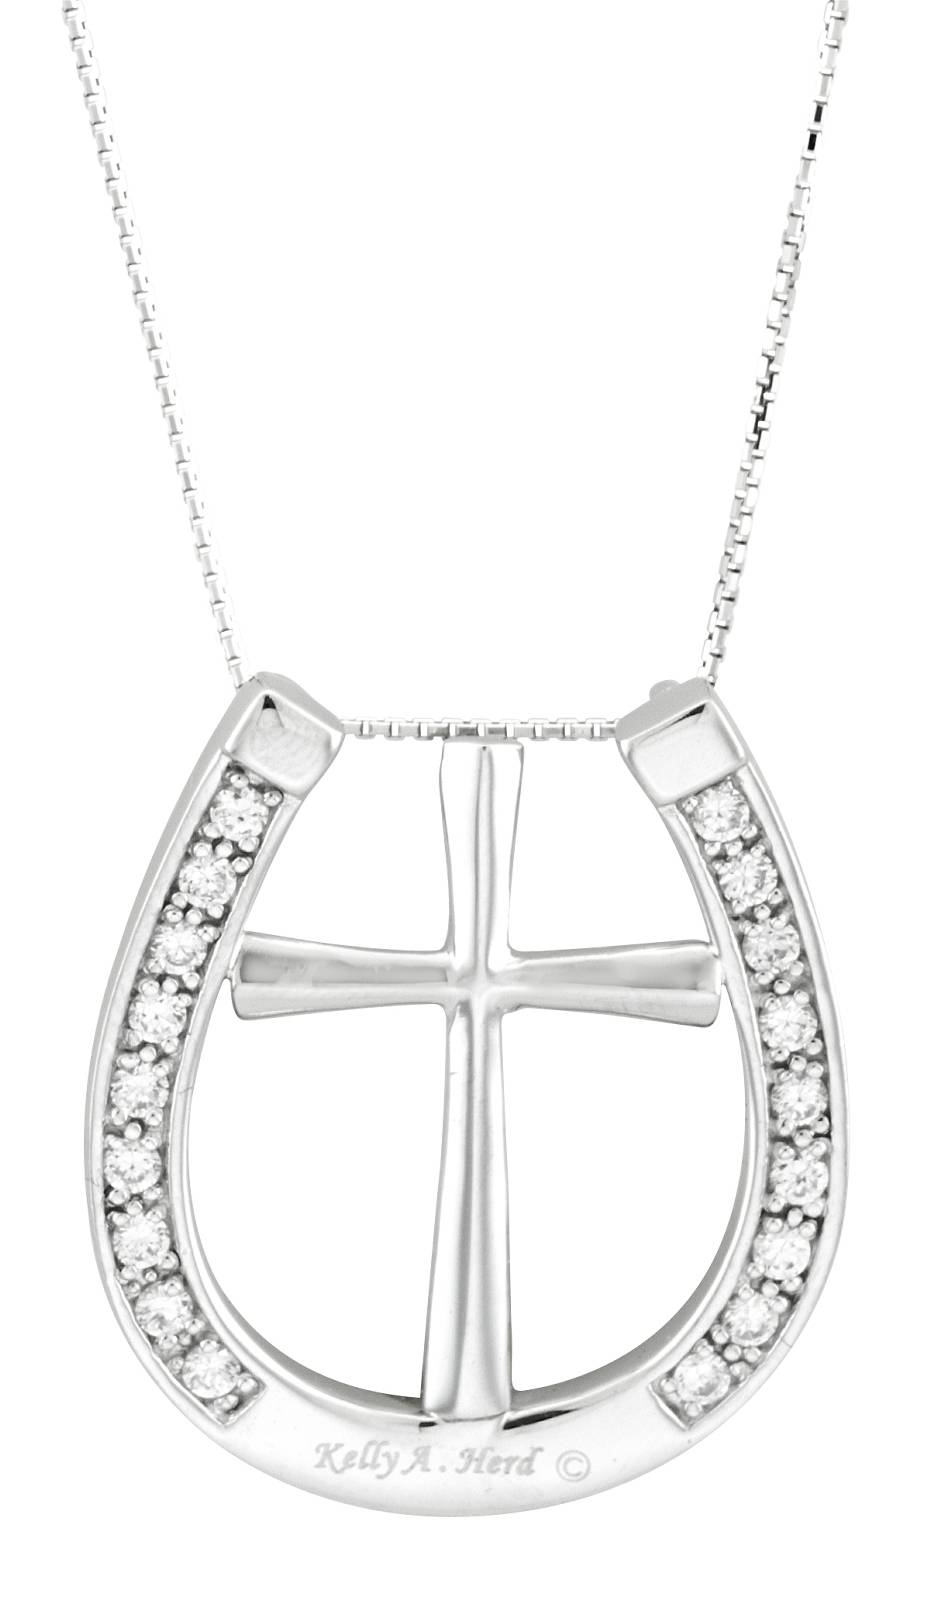 Kelly Herd Cross and Horseshoe Pendant